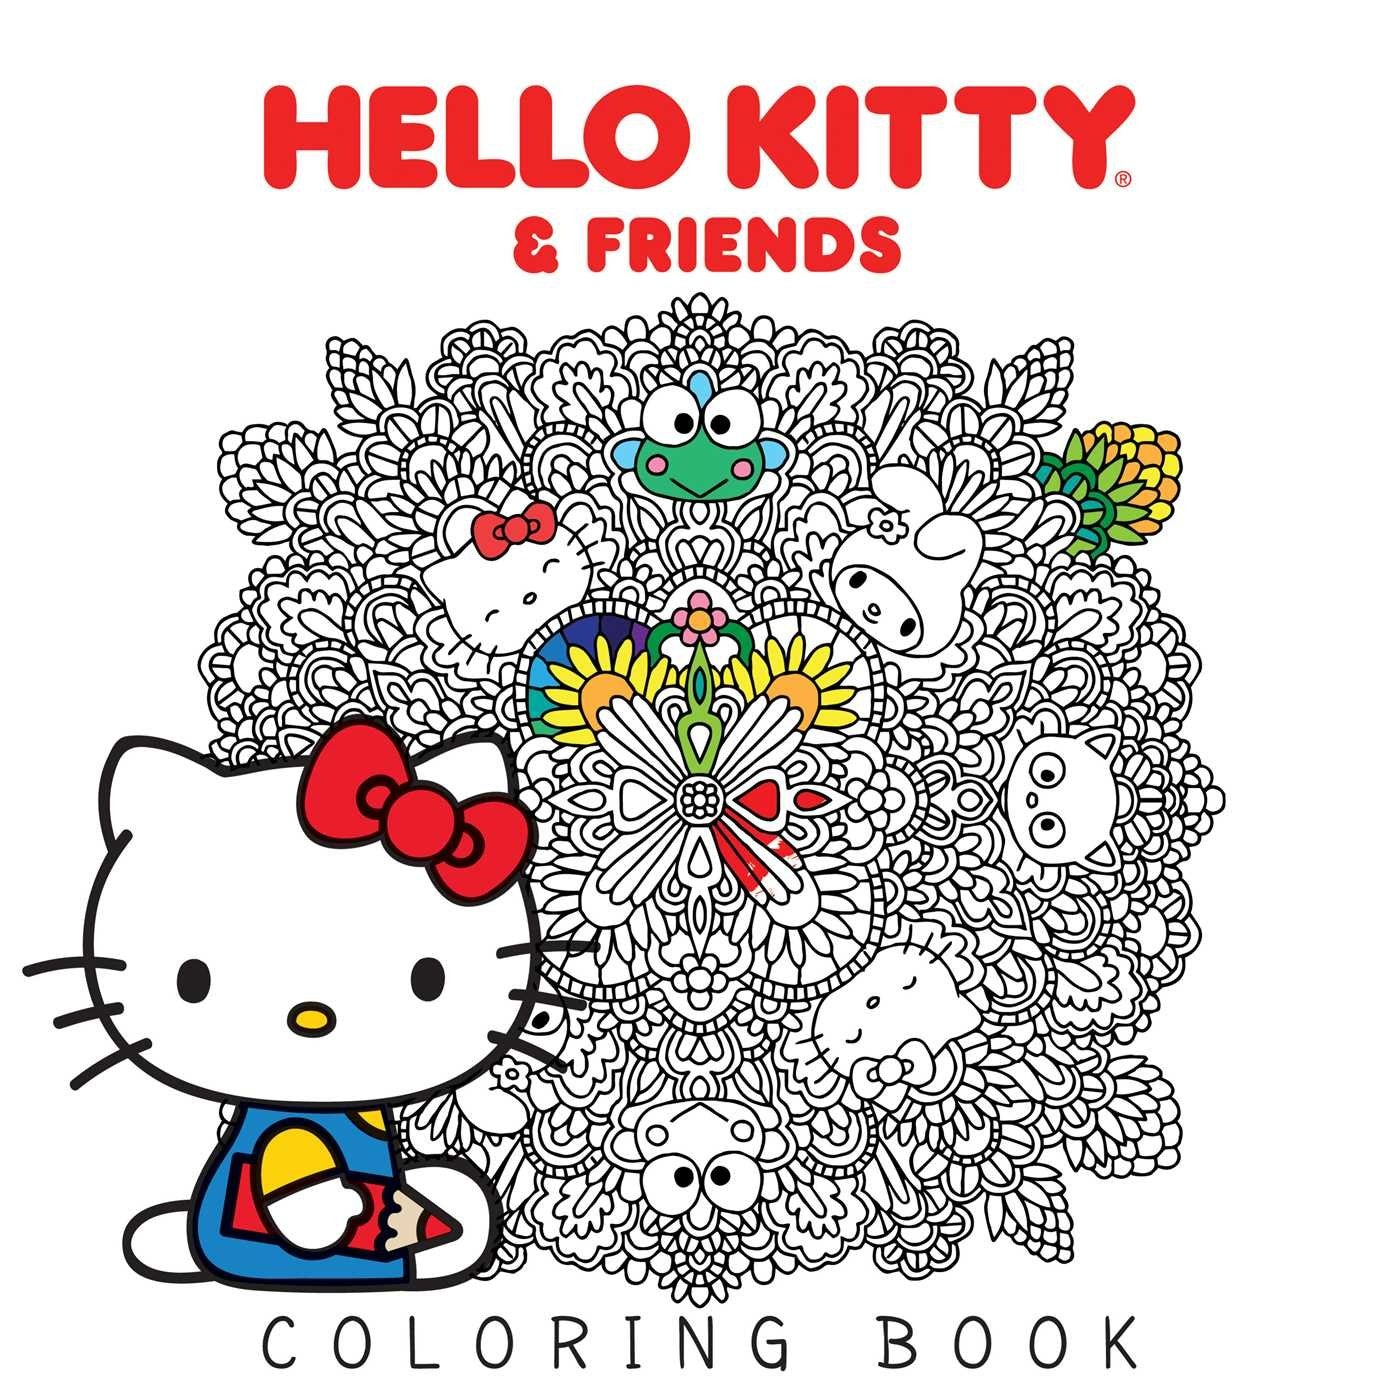 - 15 Coloring Books For Adults That Will Make You Seriously